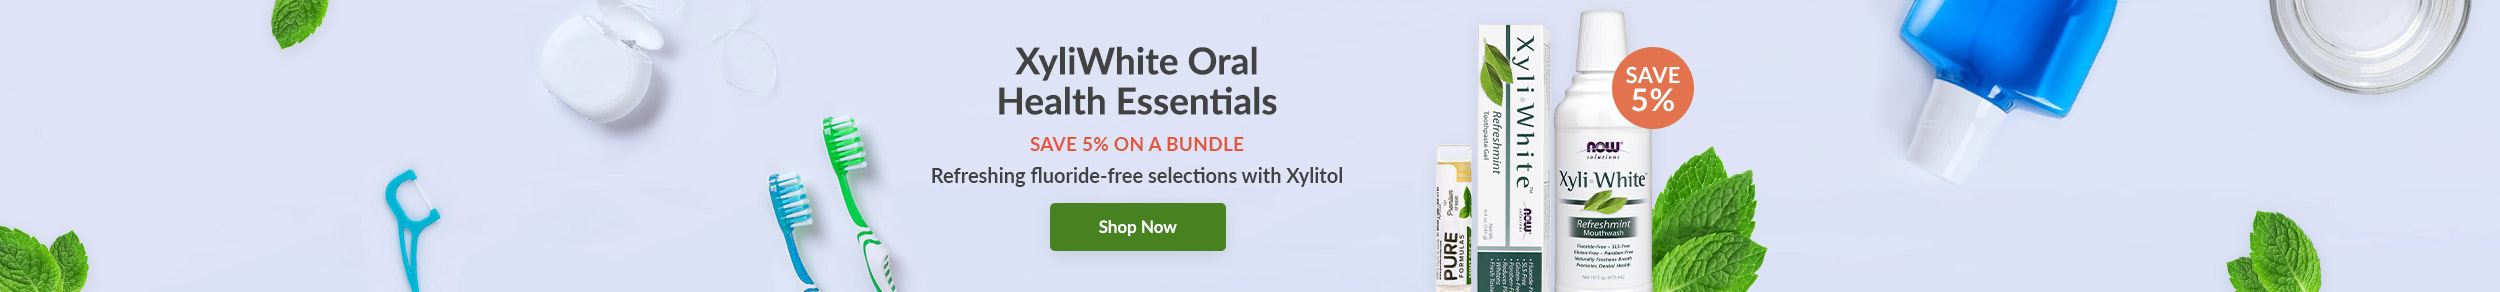 https://i3.pureformulas.net/images/static/XyliWhite-Oral-Health-Essentials_Beauty-2_092118.jpg